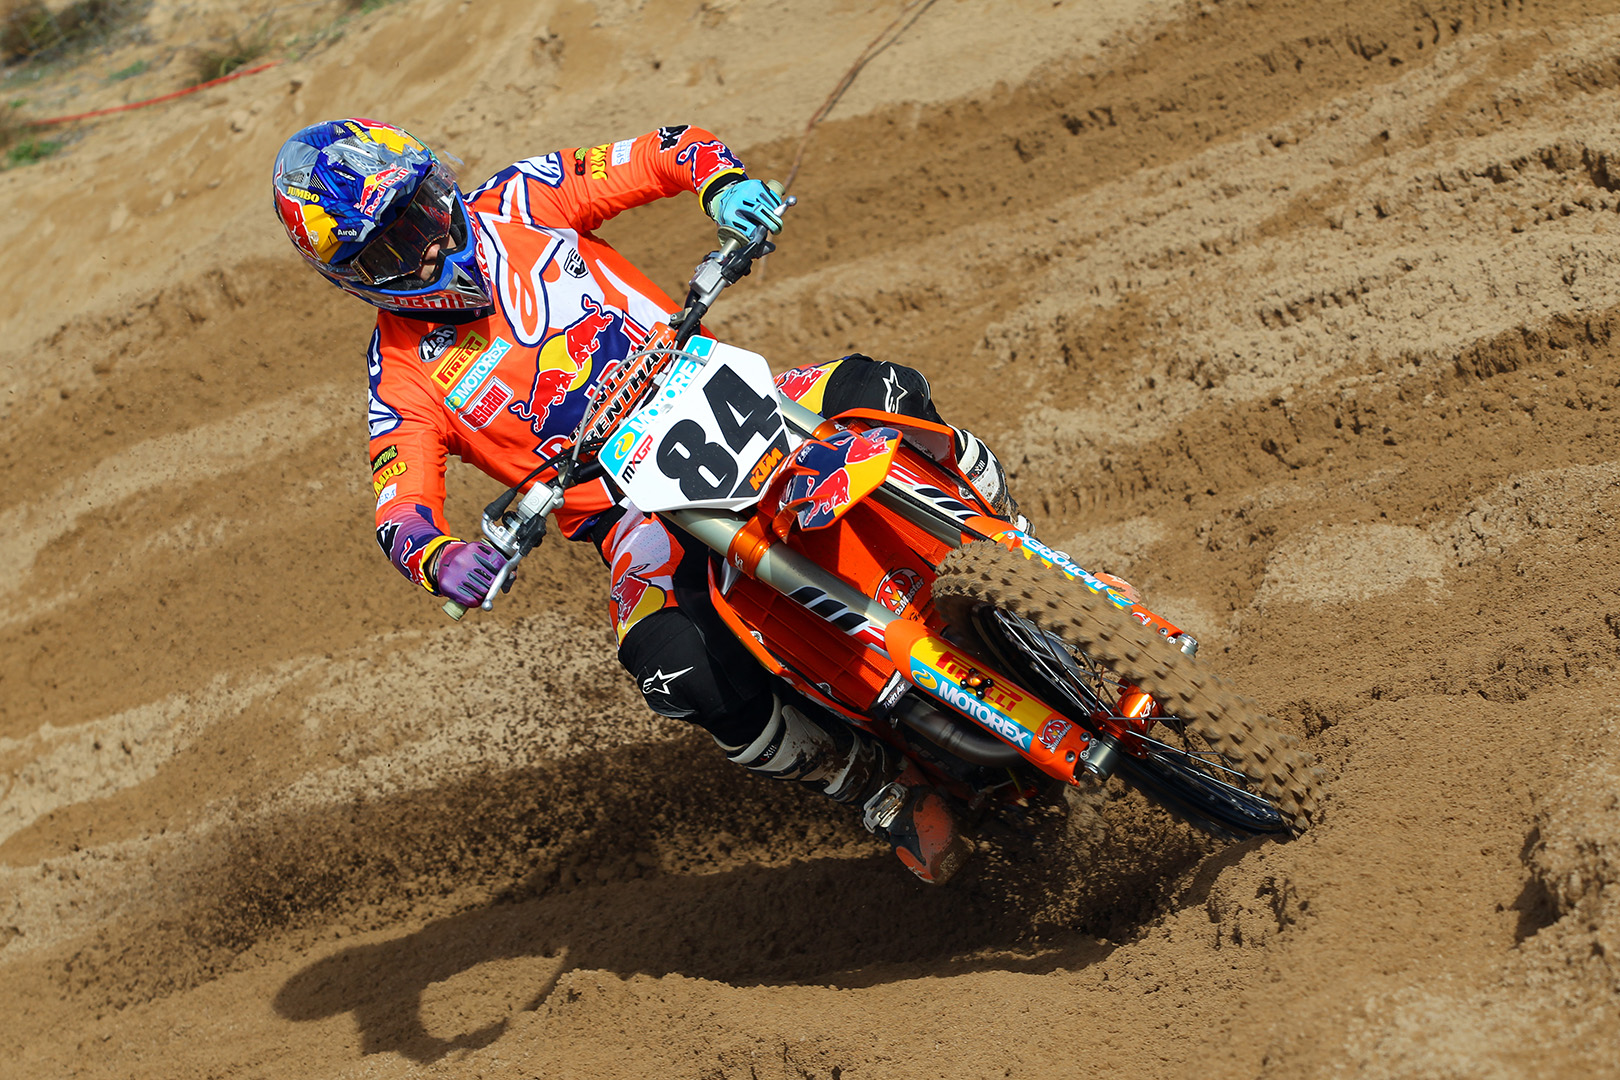 Design A Home Home Jeffrey Herlings 84 Official Website